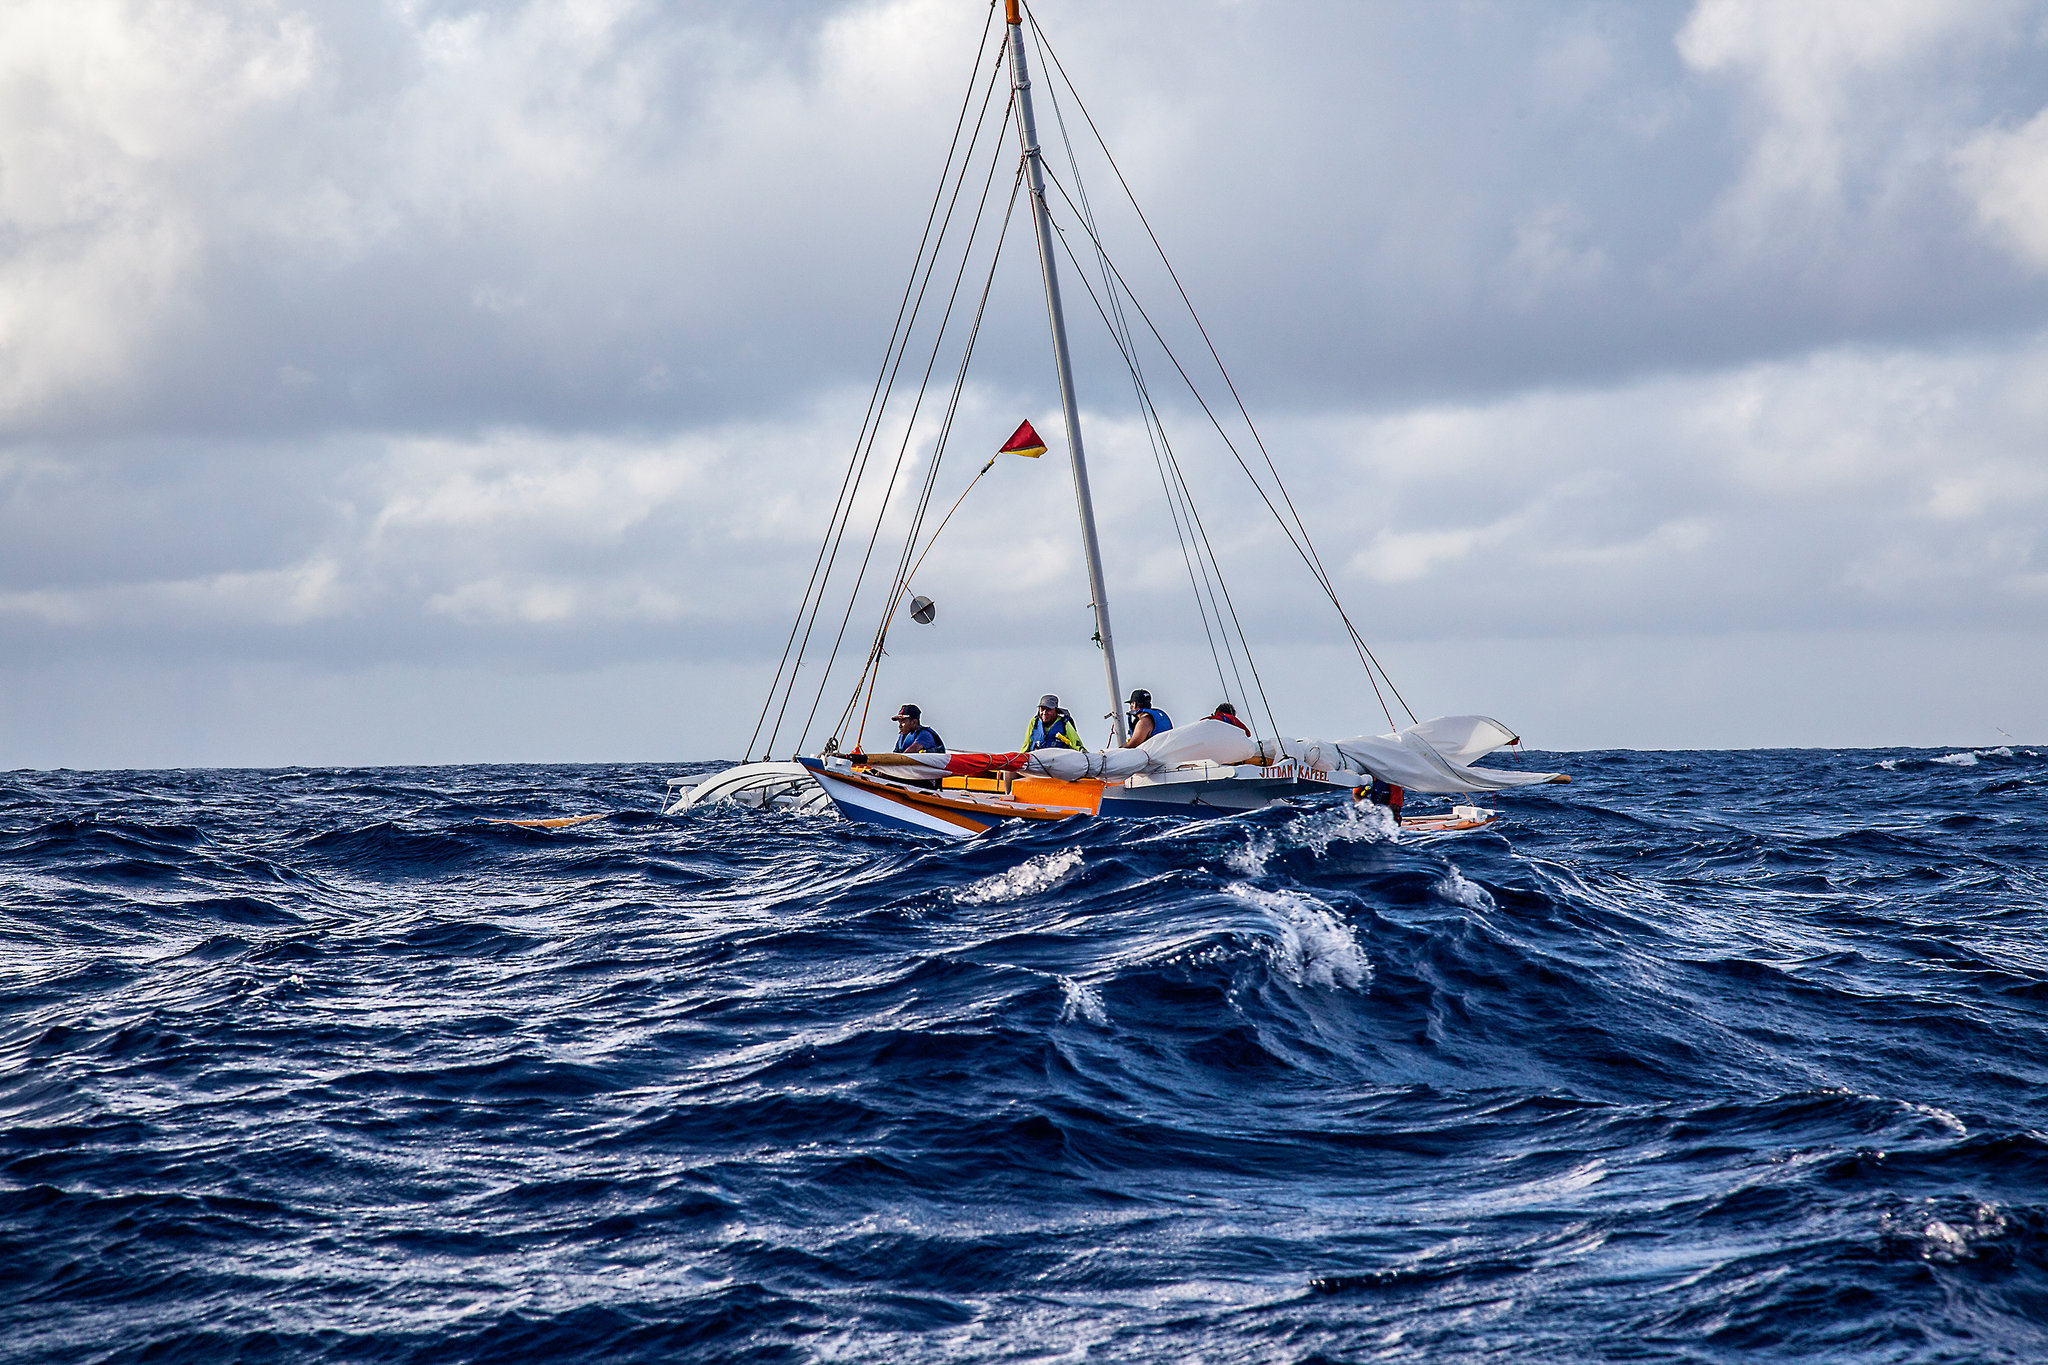 Sailing canoe at sea.